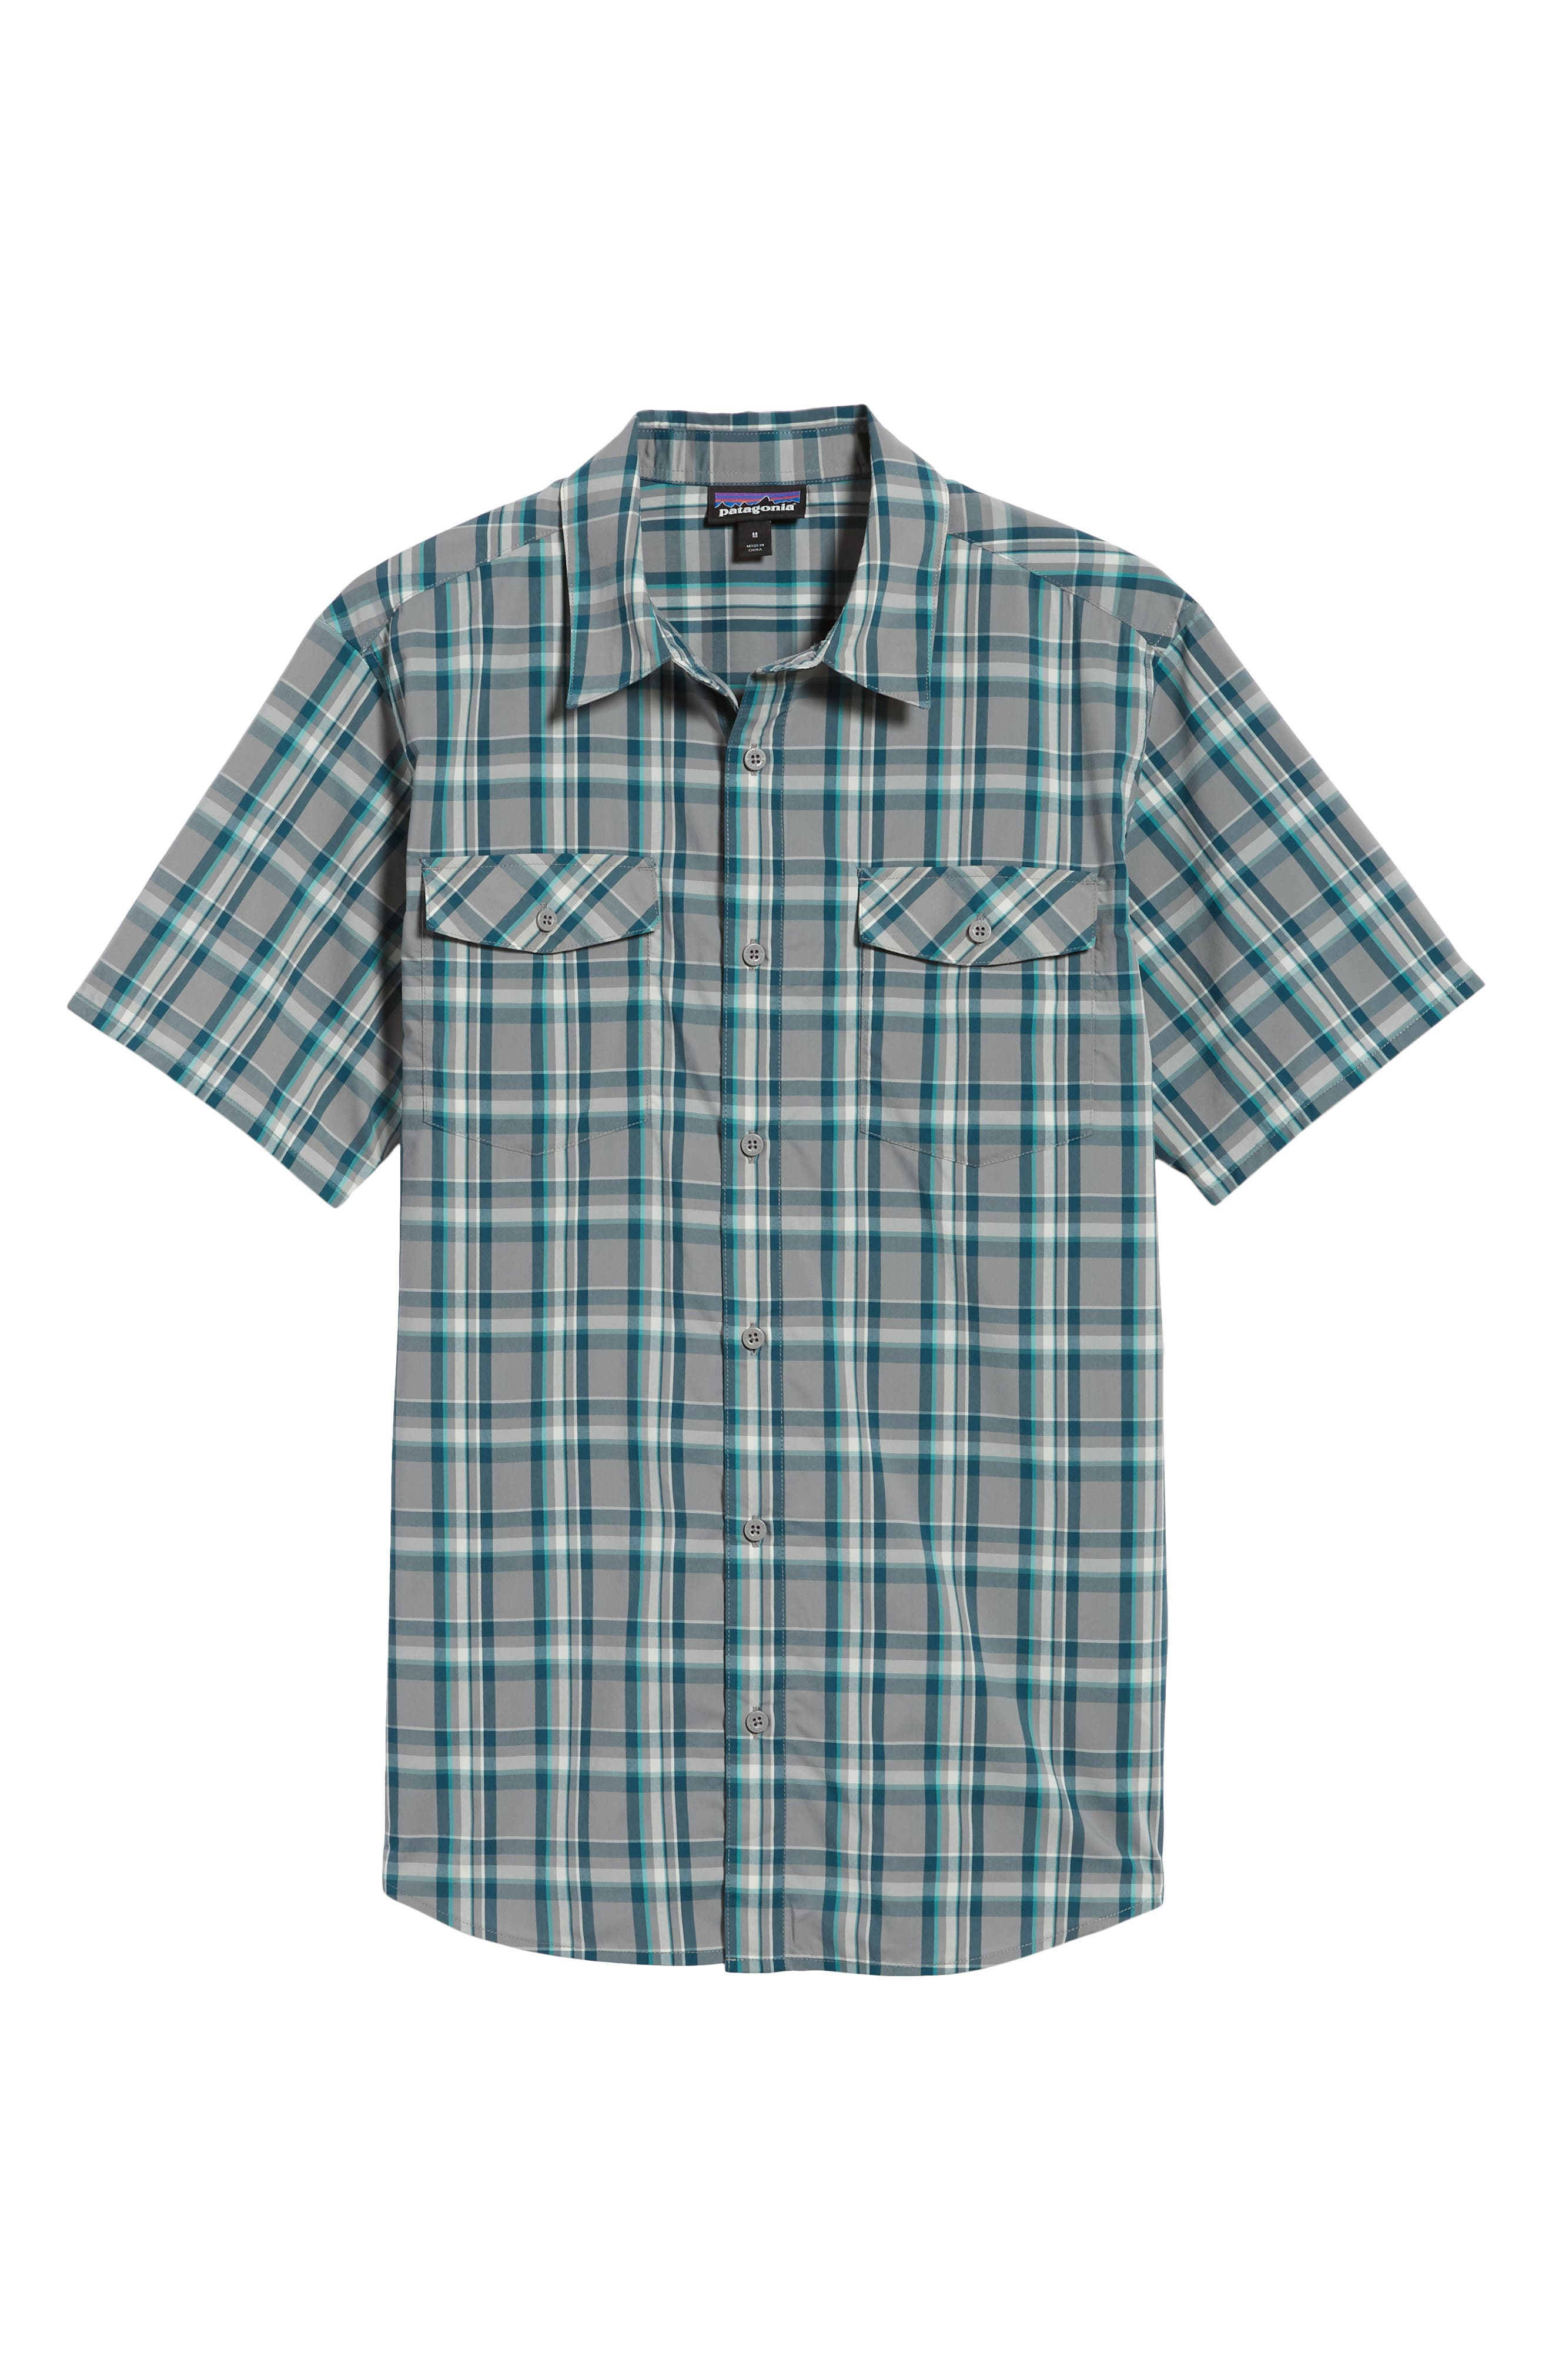 High Moss Regular Fit Short Sleeve Sport Shirt,                             Alternate thumbnail 6, color,                             Anchor/ Feather Grey